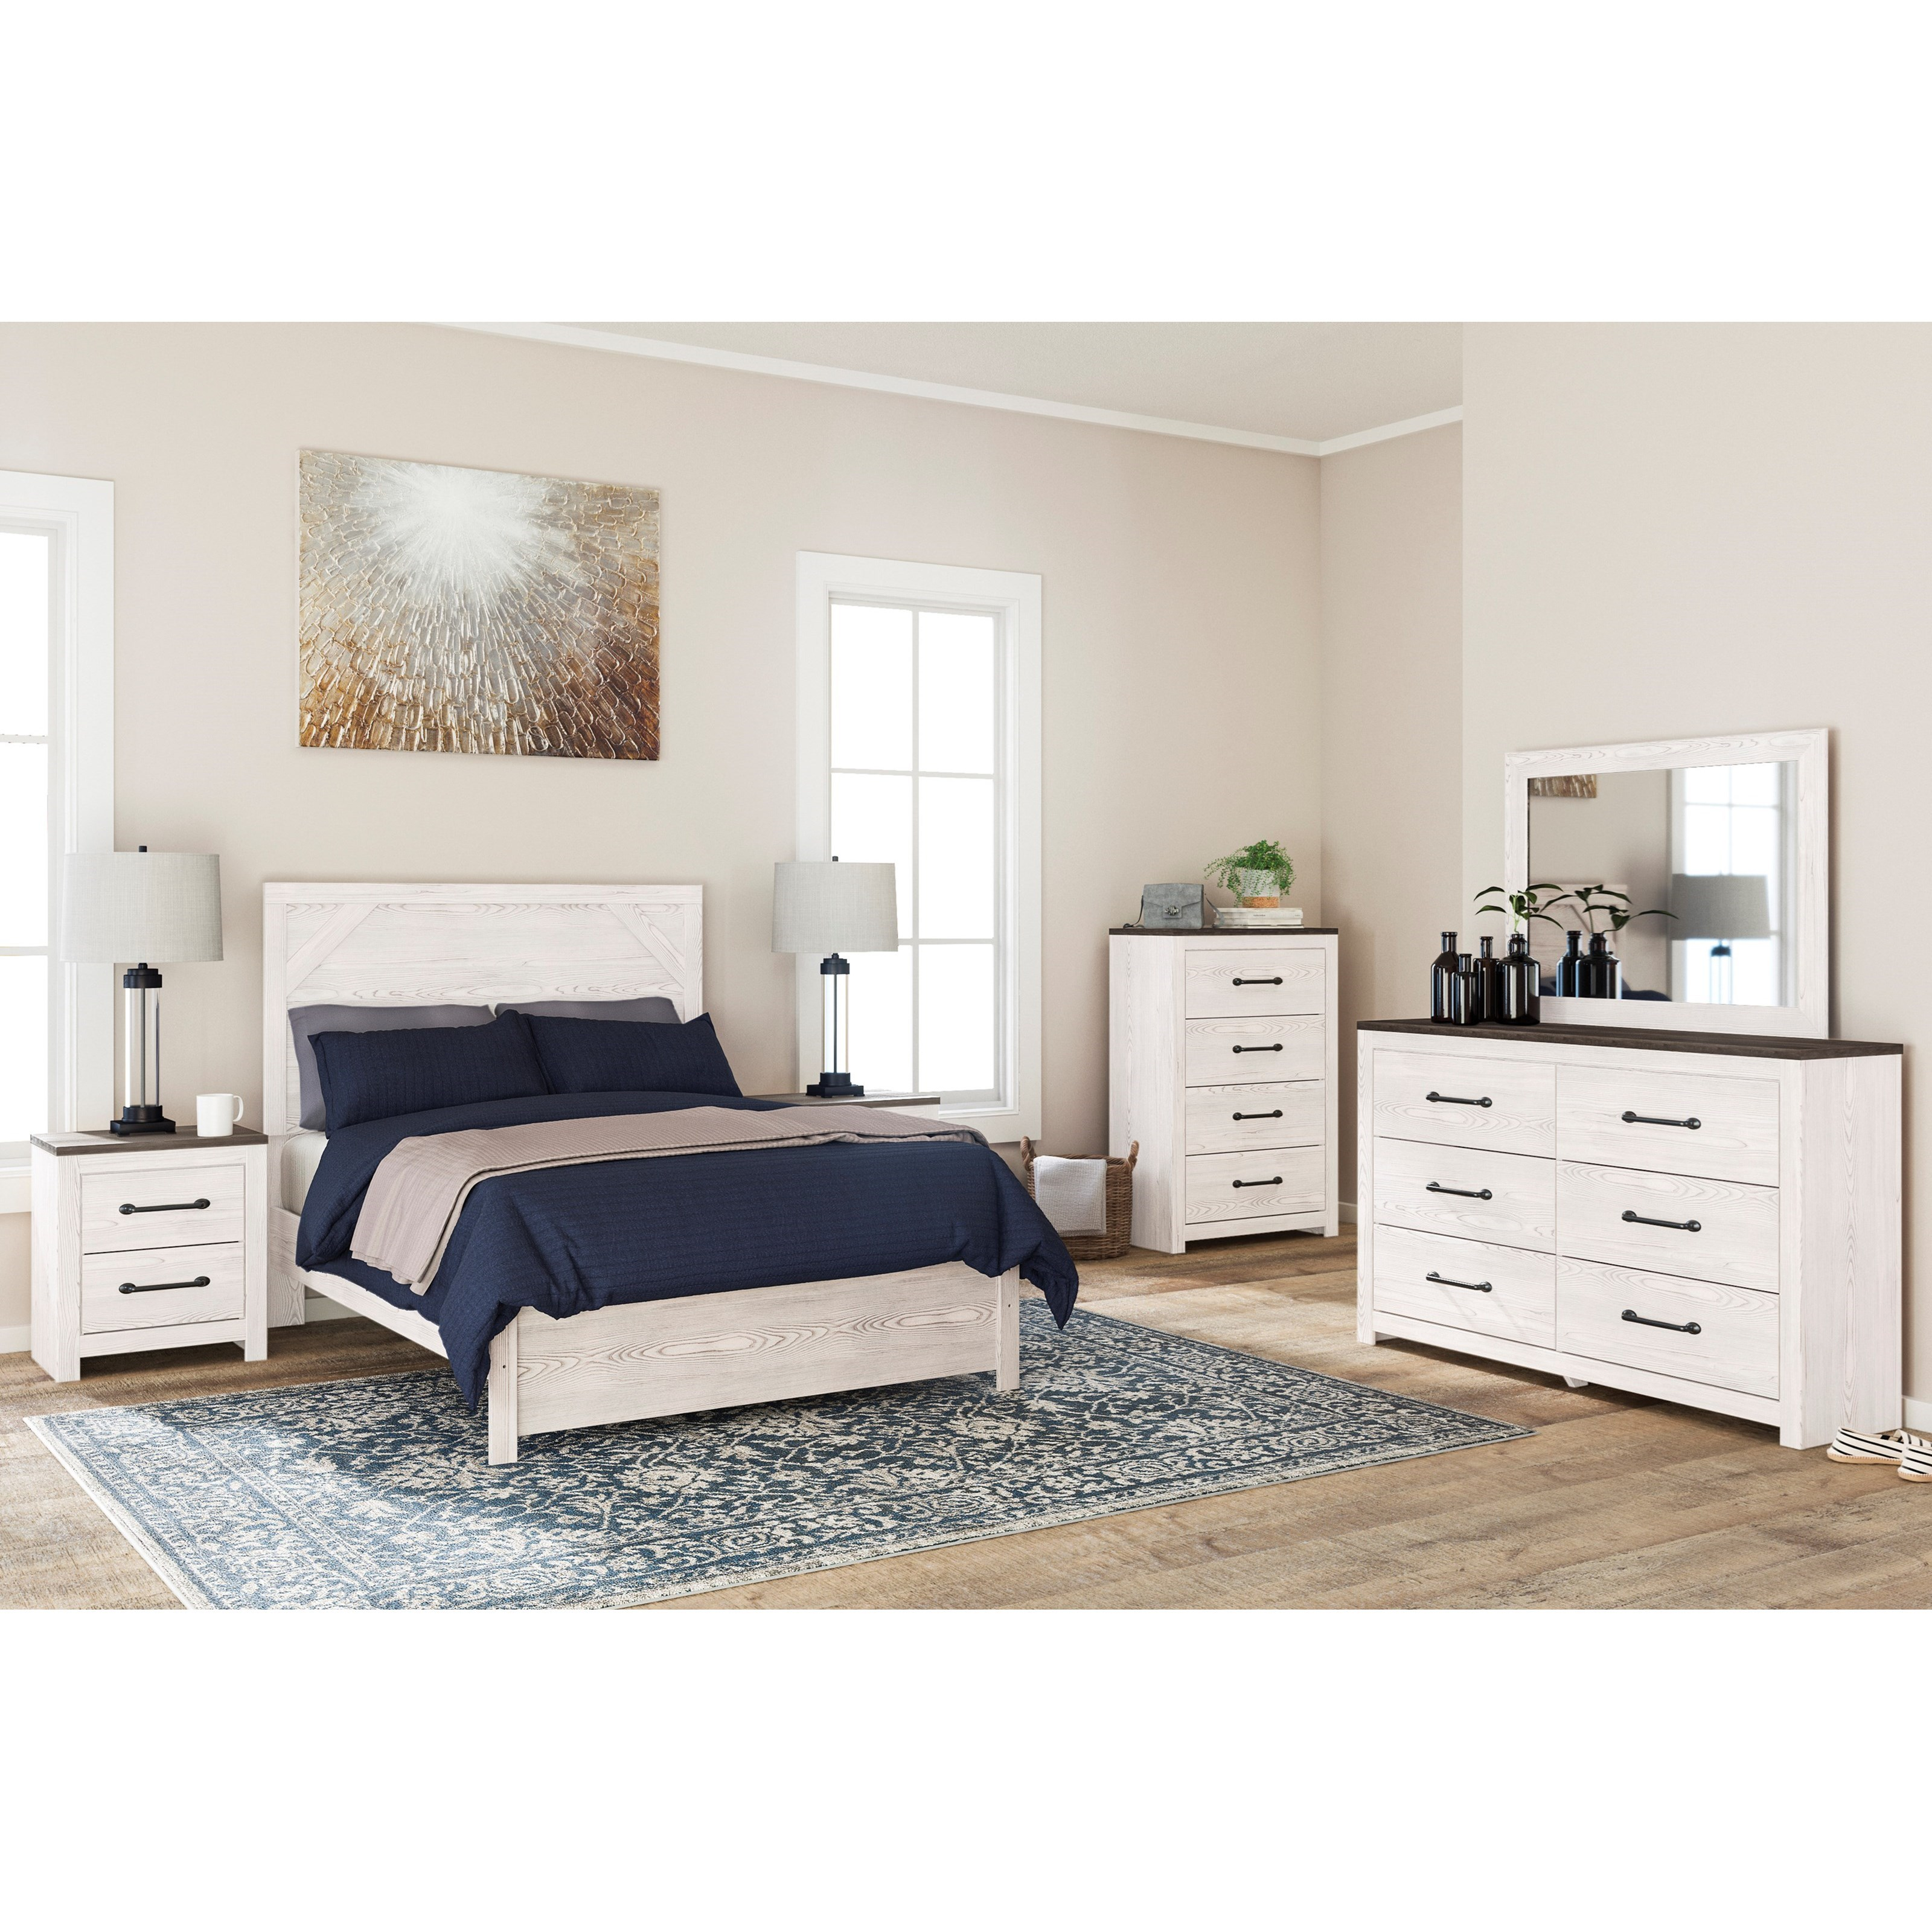 Gerridan Full Bedroom Group by Signature Design by Ashley at Northeast Factory Direct